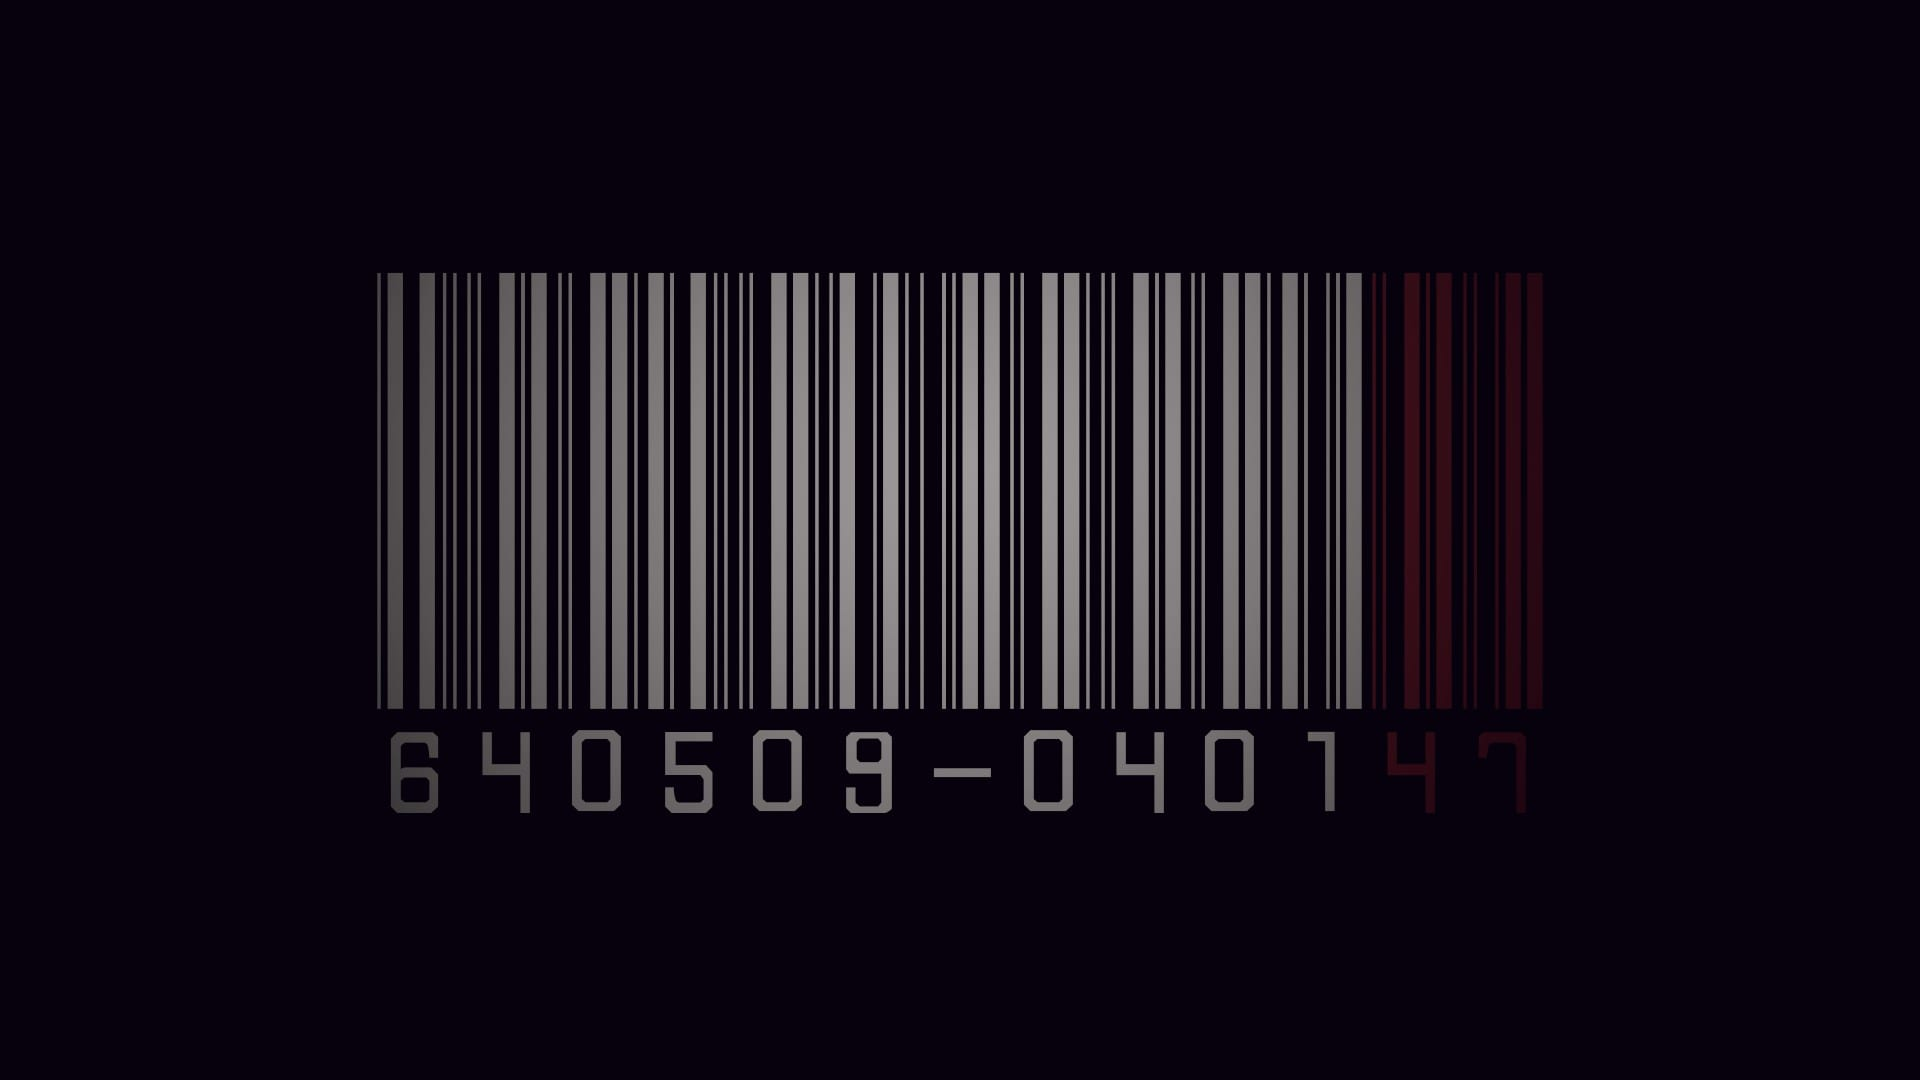 barcode-wallpaper